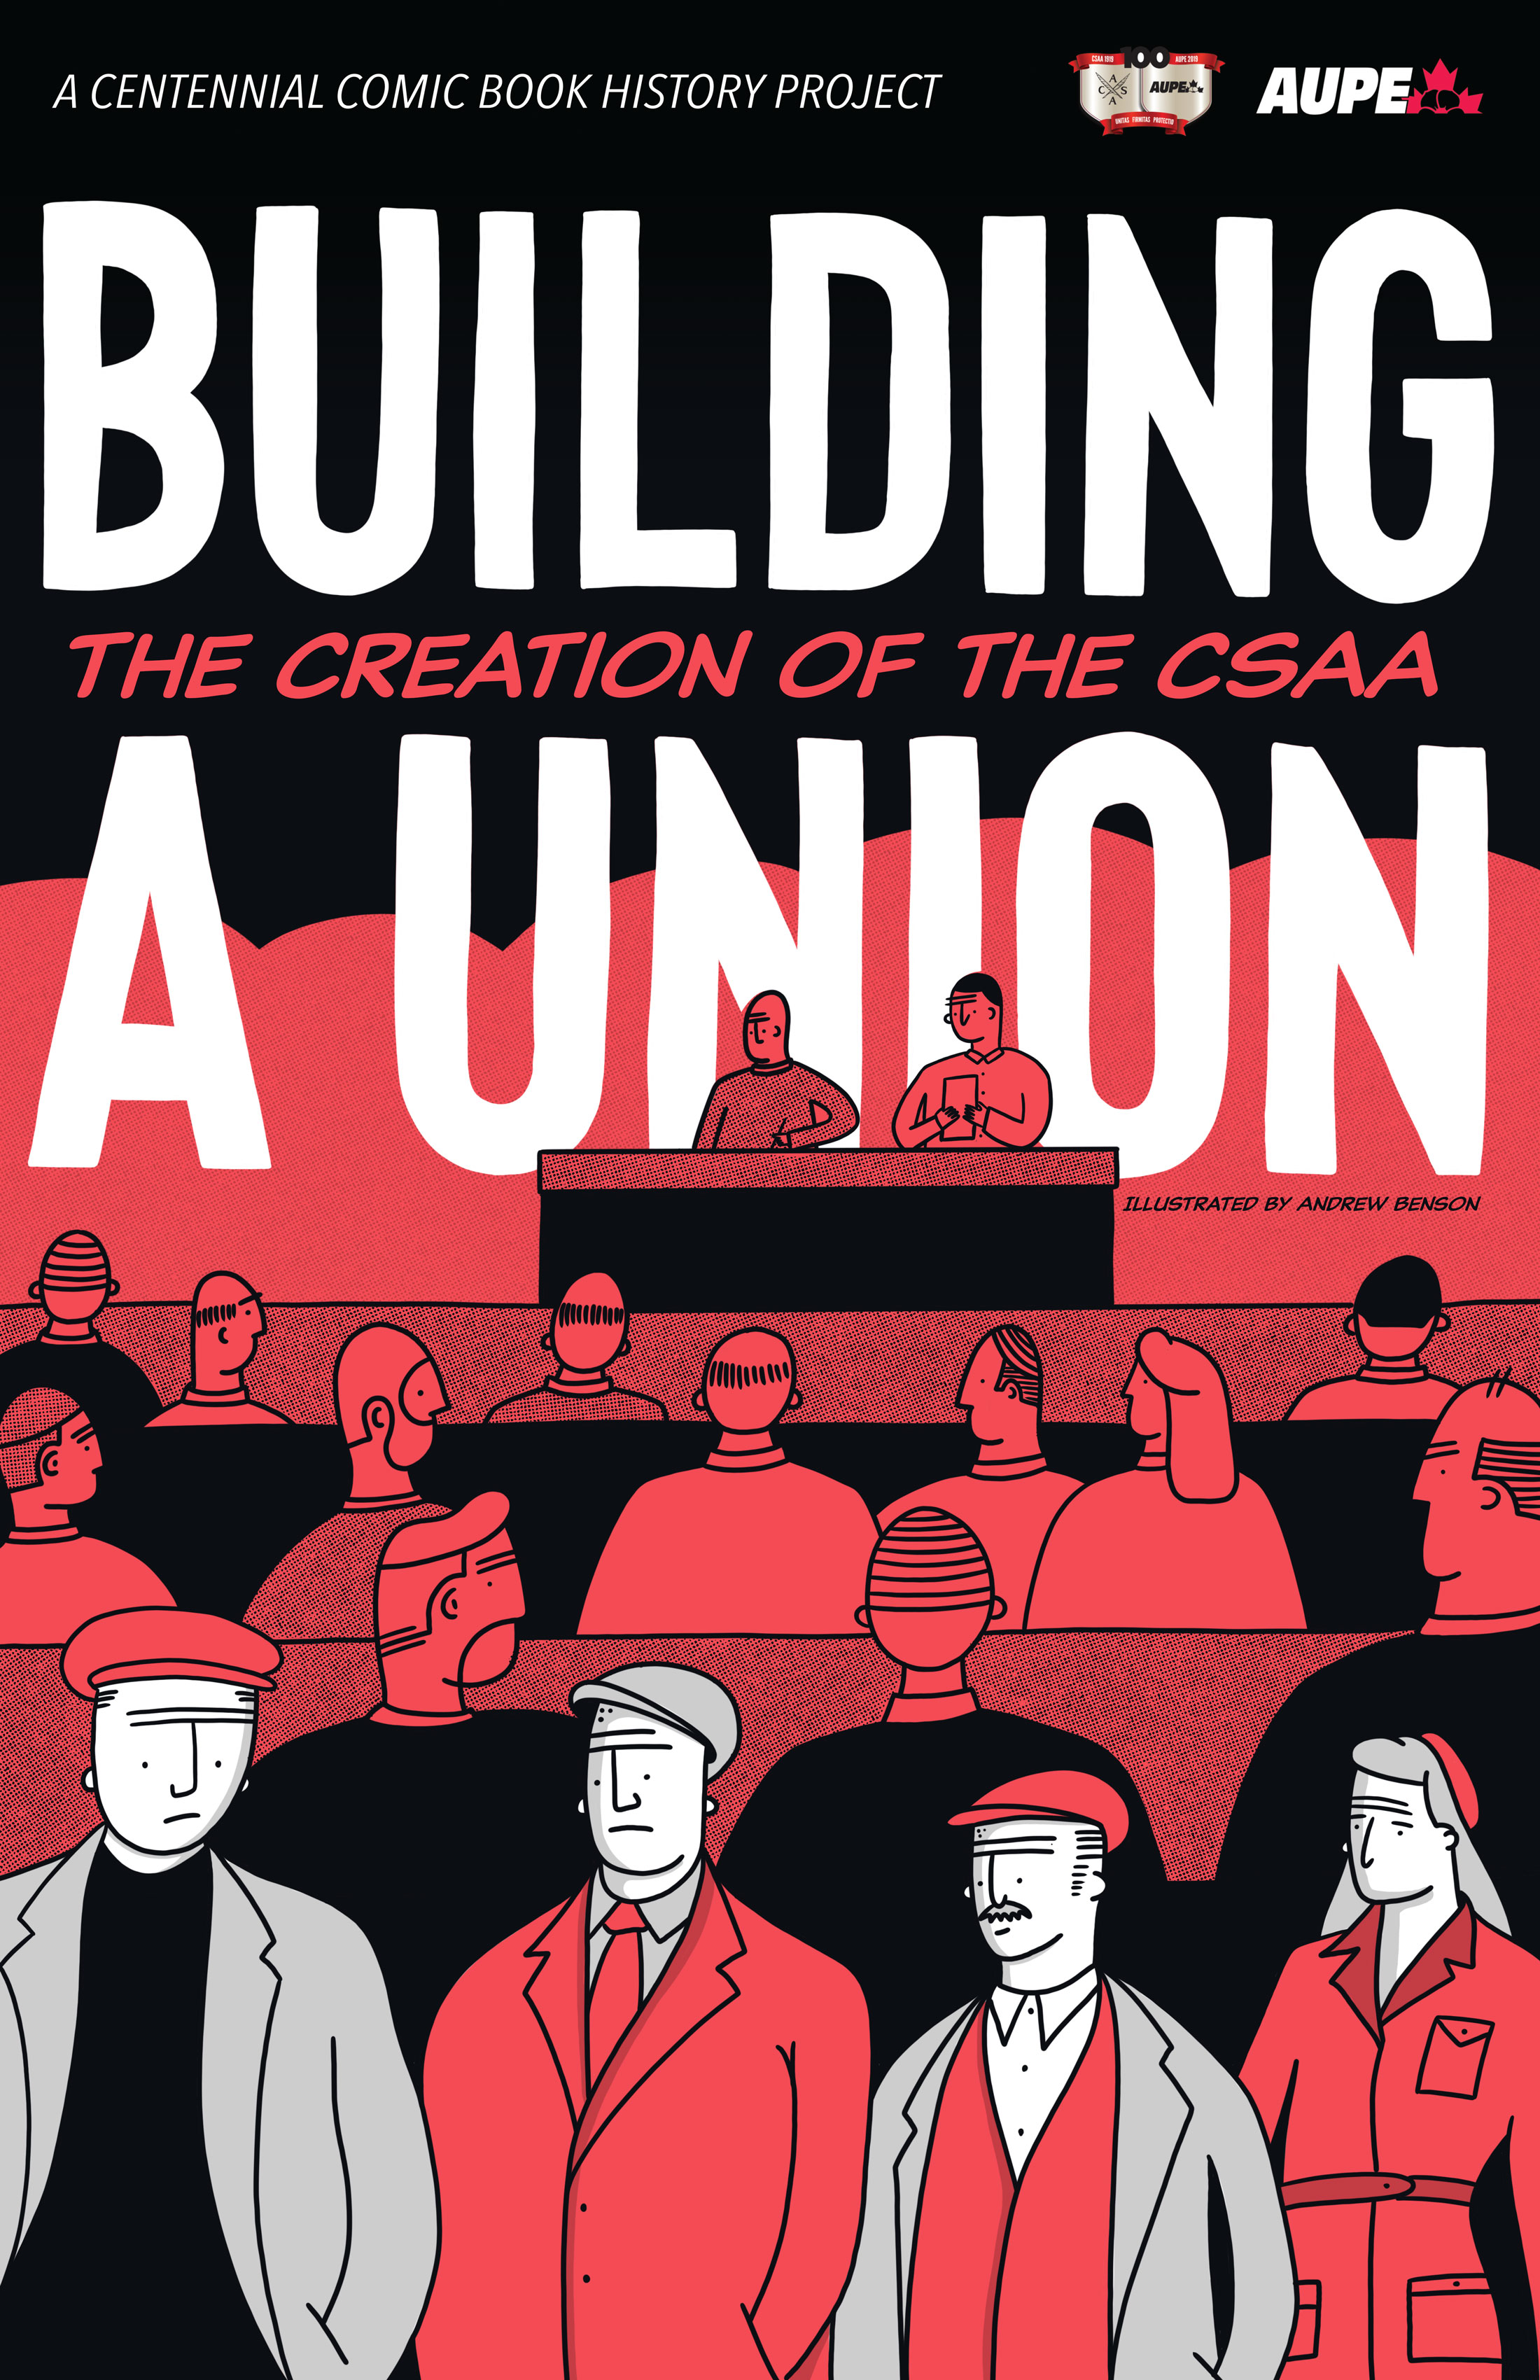 AUPE_Building-a-union_Poster_V02.jpg